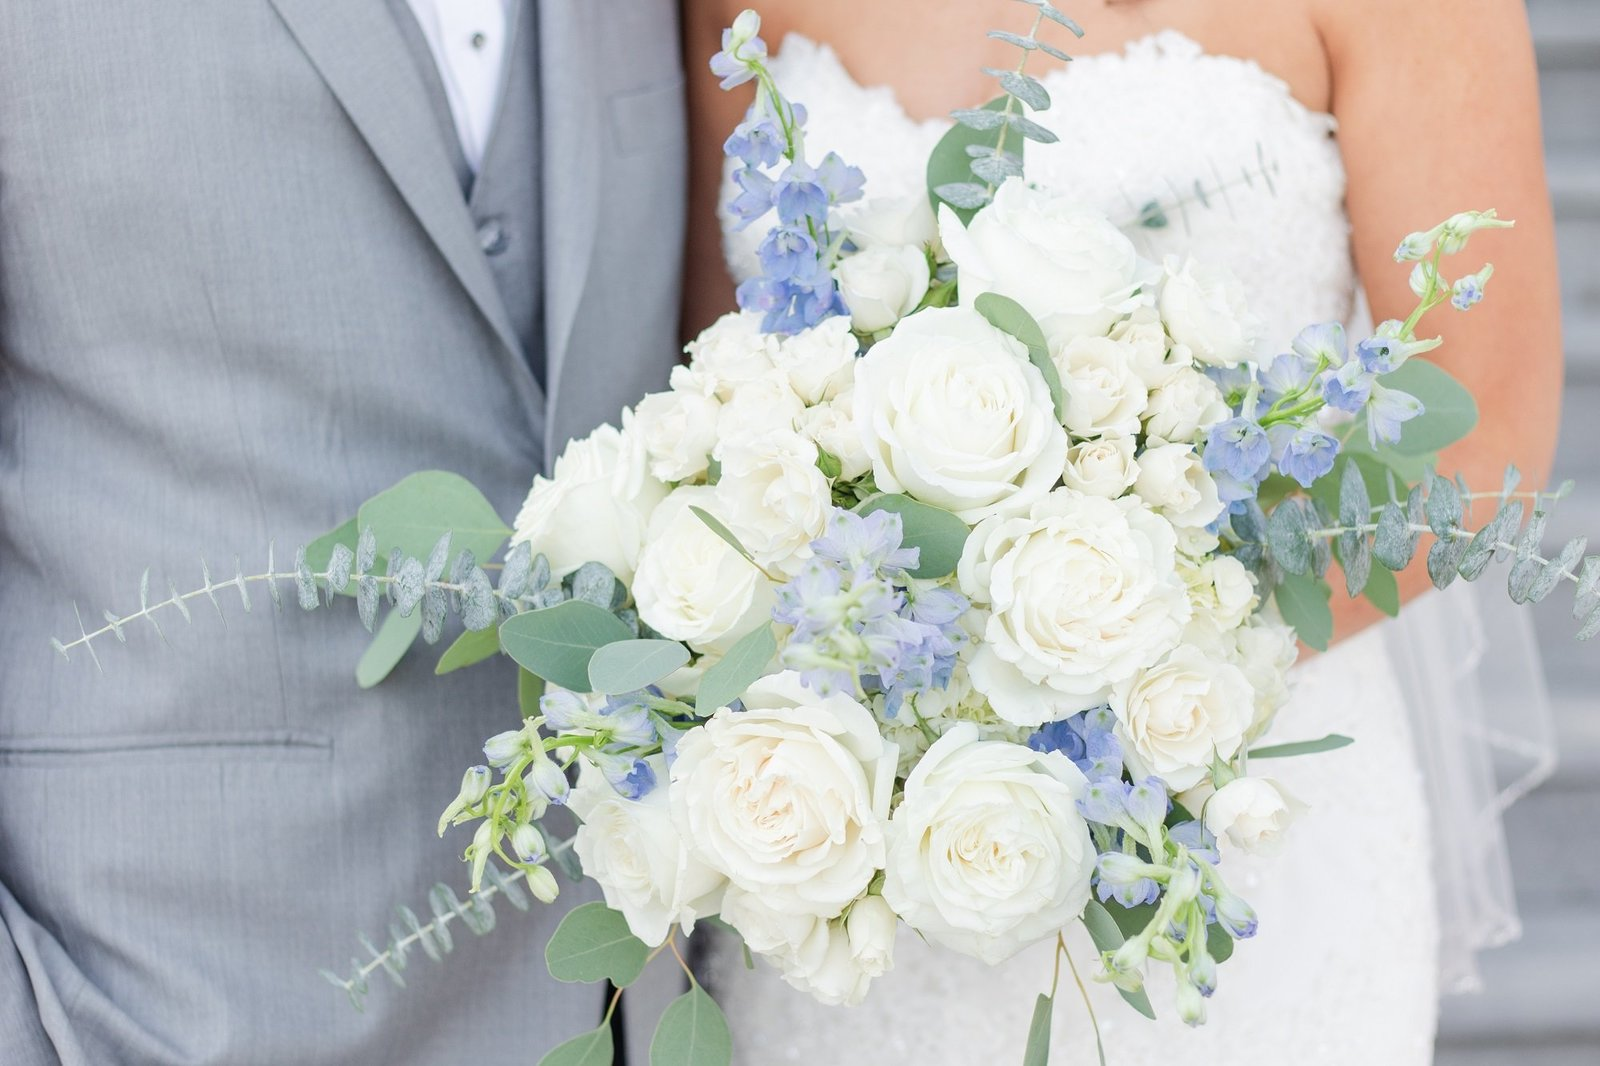 Val and Ryan holding blue and white bouquet